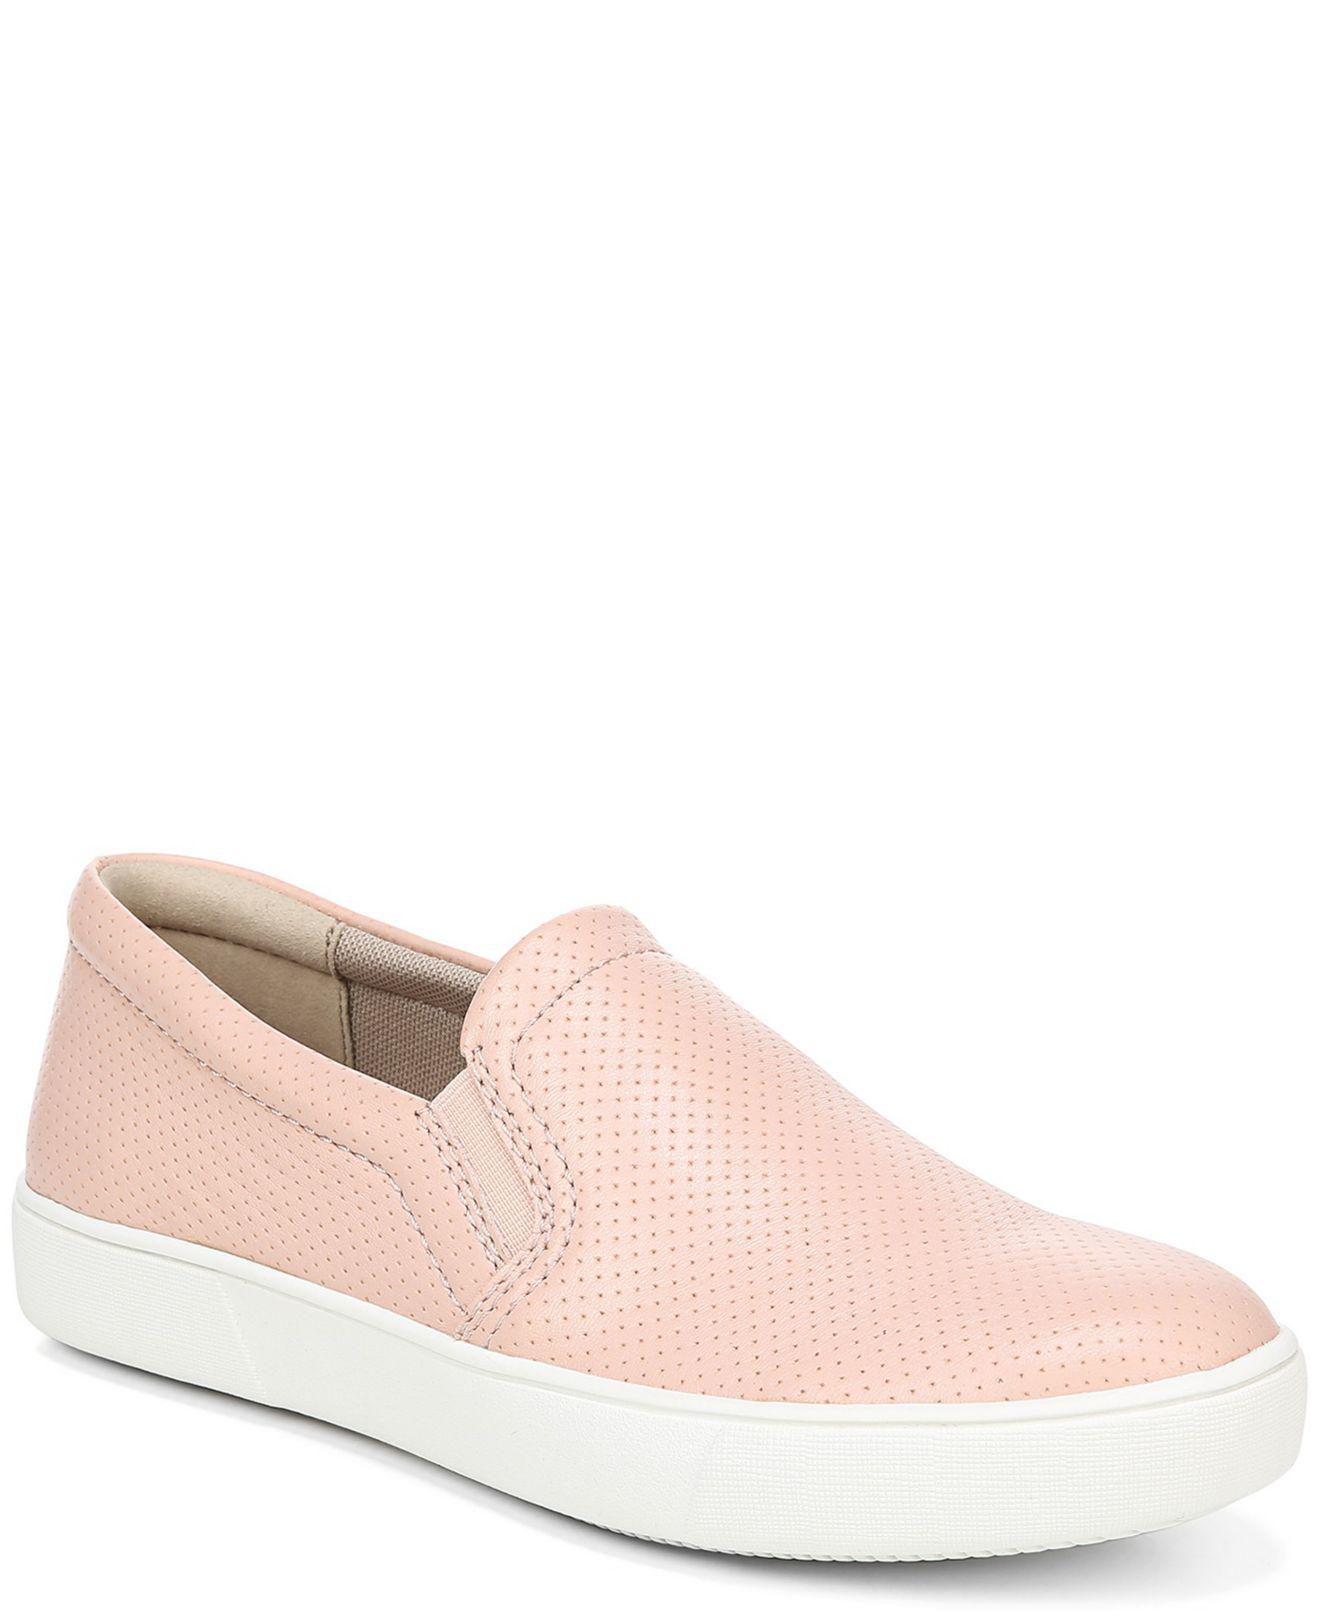 ... Lyst - Naturalizer Marianne Sneakers in Pink unique design 88b2c 24bf3  ... dc04b1a2d